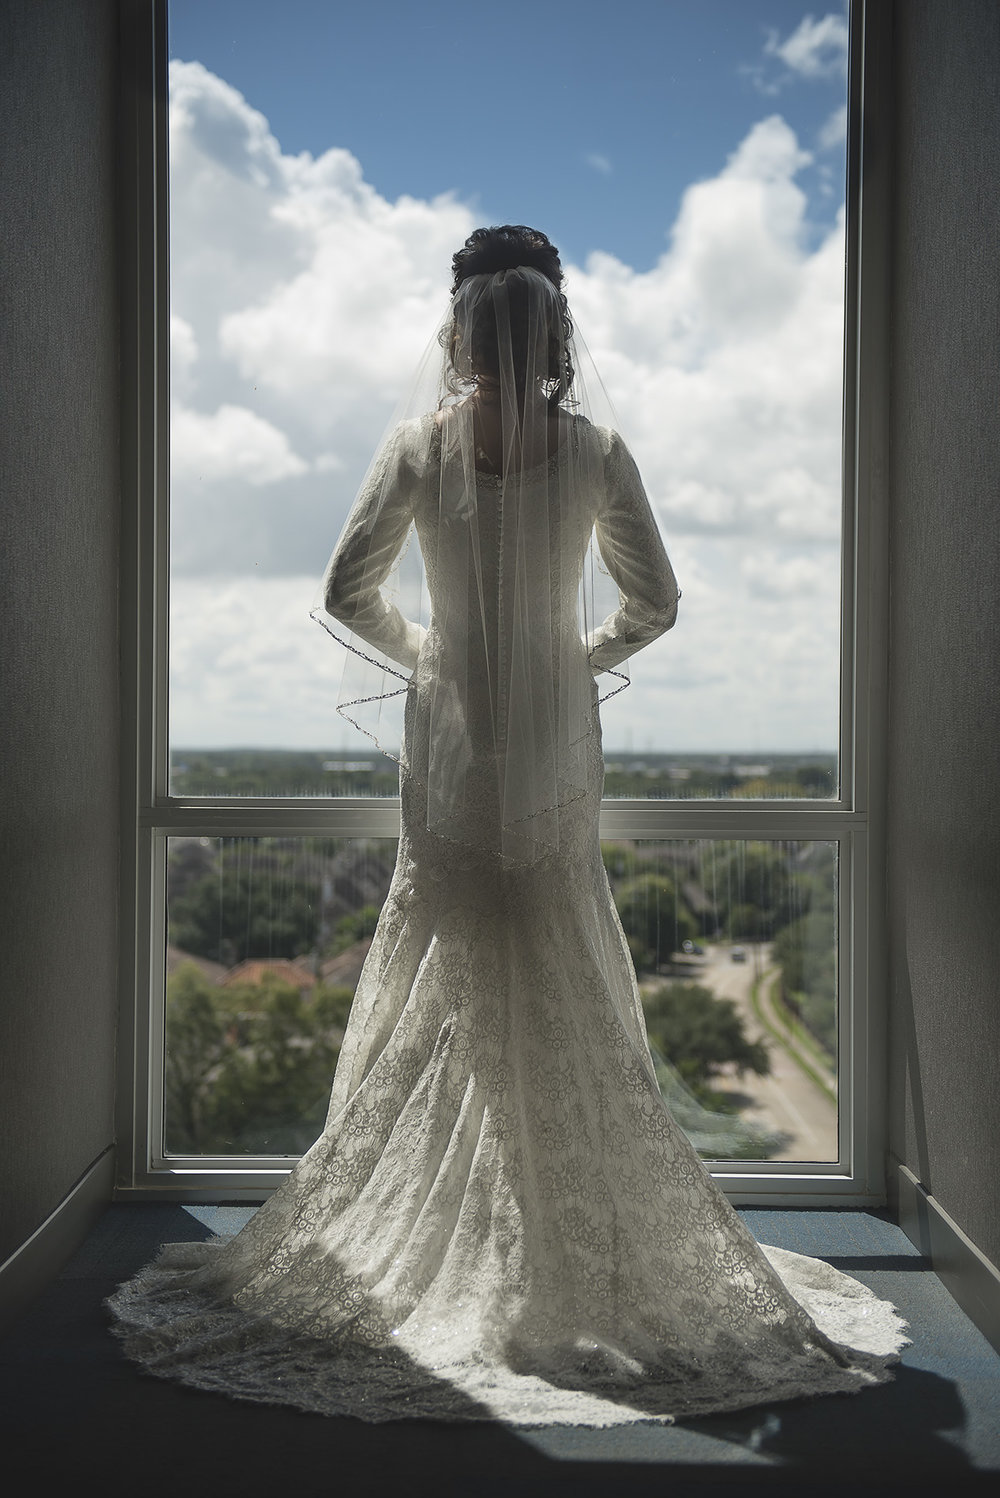 Aloft-hotel-houston-texas-bridal-wedding-photography